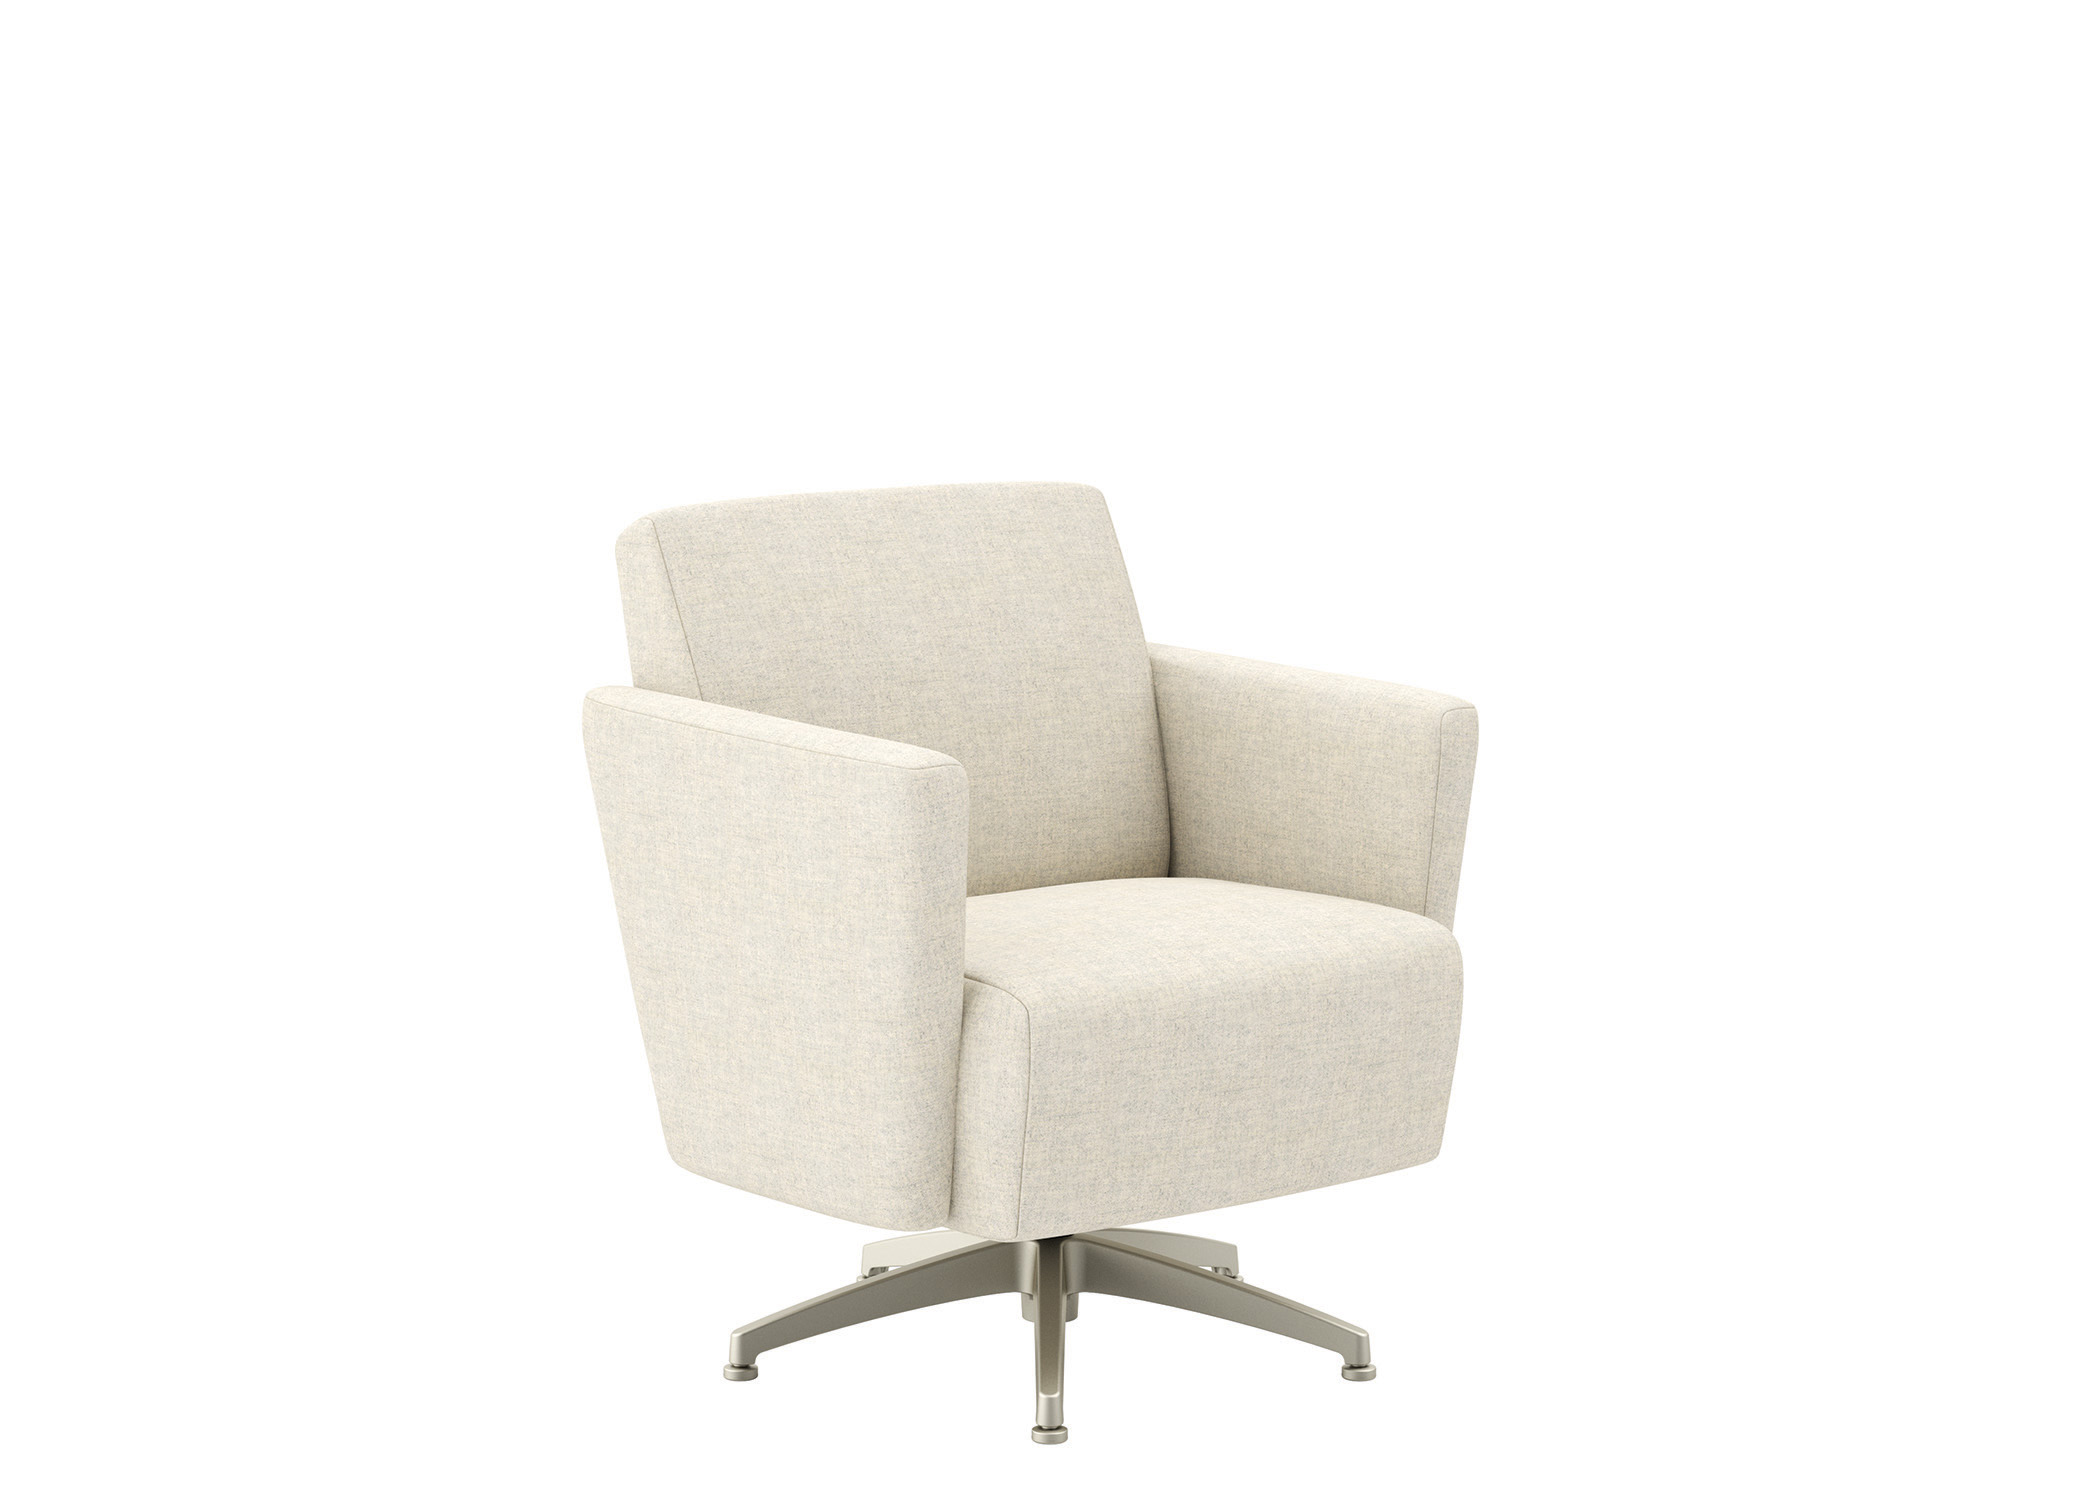 Seating National Office Furniture